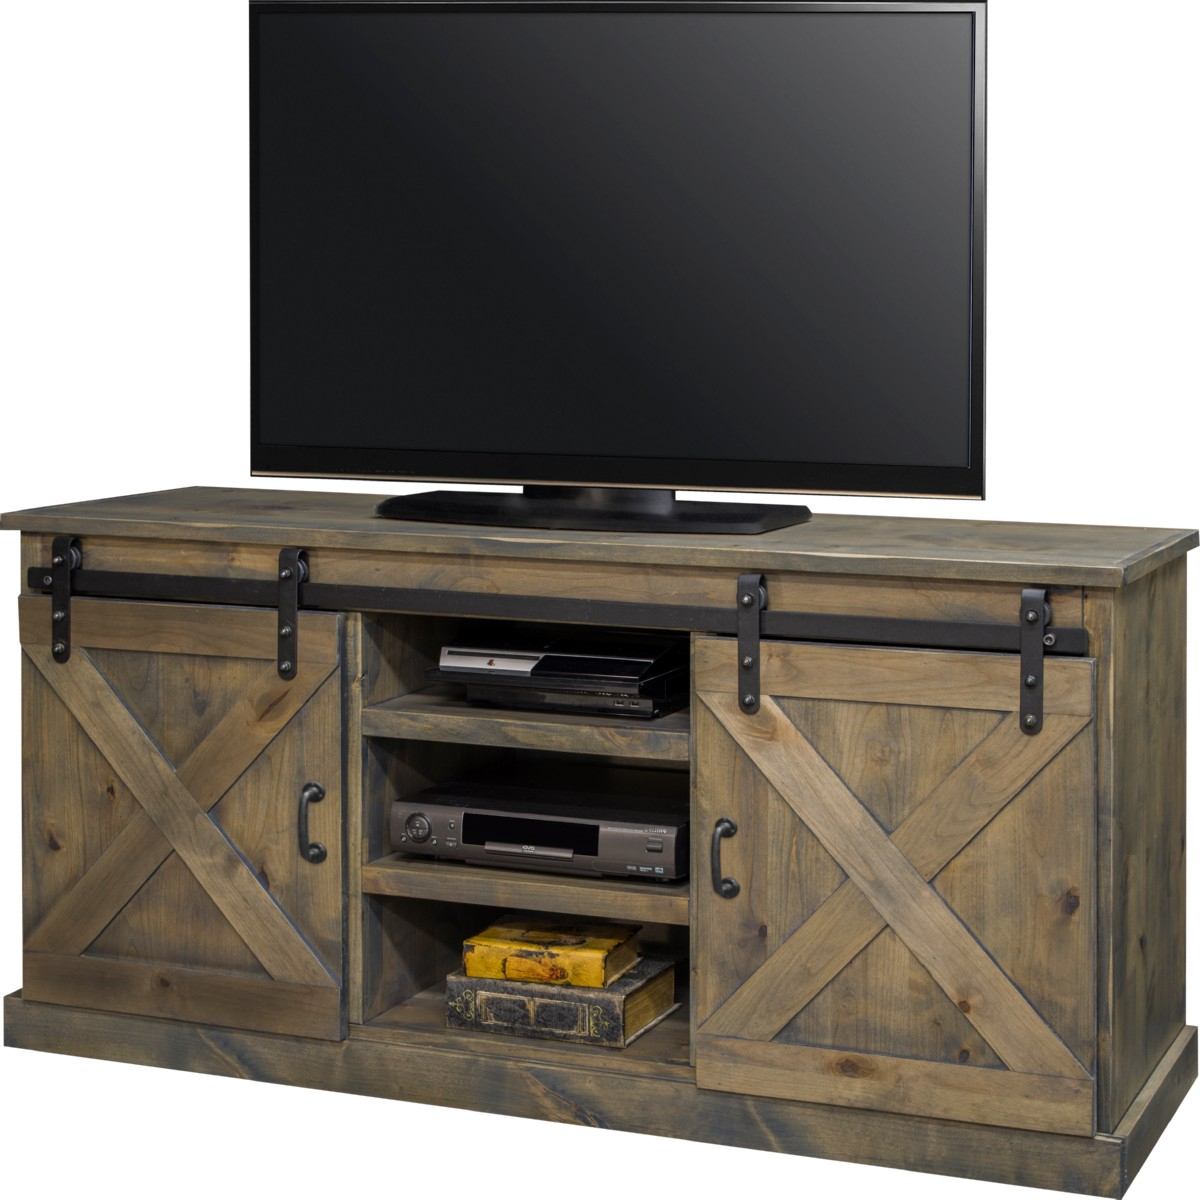 Rustic Country Tv Stands In Weathered Pine Finish Within Most Current Legends Furniture Fh (View 1 of 10)